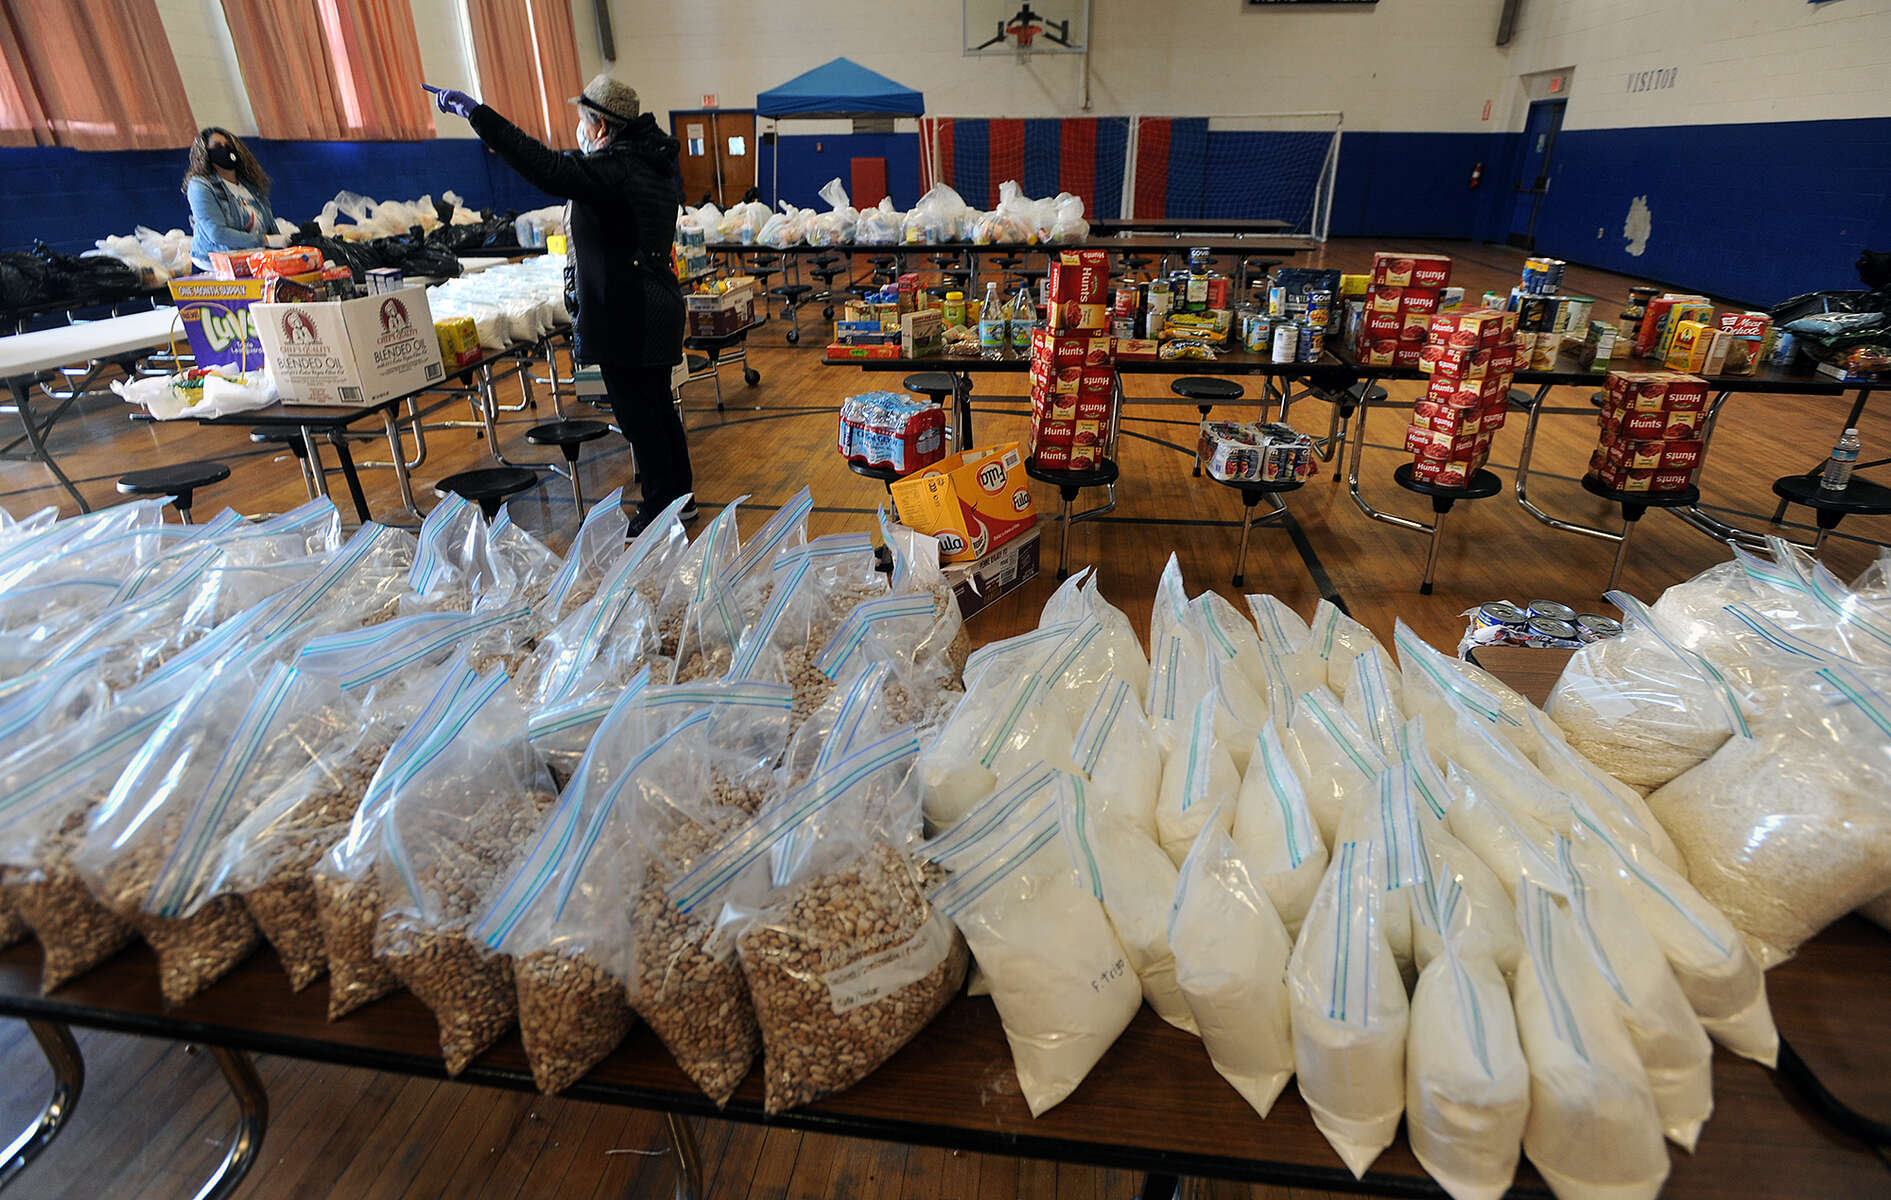 4/17/20-- FRAMINGHAM-- Inside the Brazilian American Center on Waverly  Street,  bags of beans and flour frame other food at the two-week old food distribution center.  They are serving 321 families as of Friday.  The hours are 9 a.m. to 12 p.m. Wednesday and Fridays. [Daily News and Wicked Local Staff Photo/Art Illman]